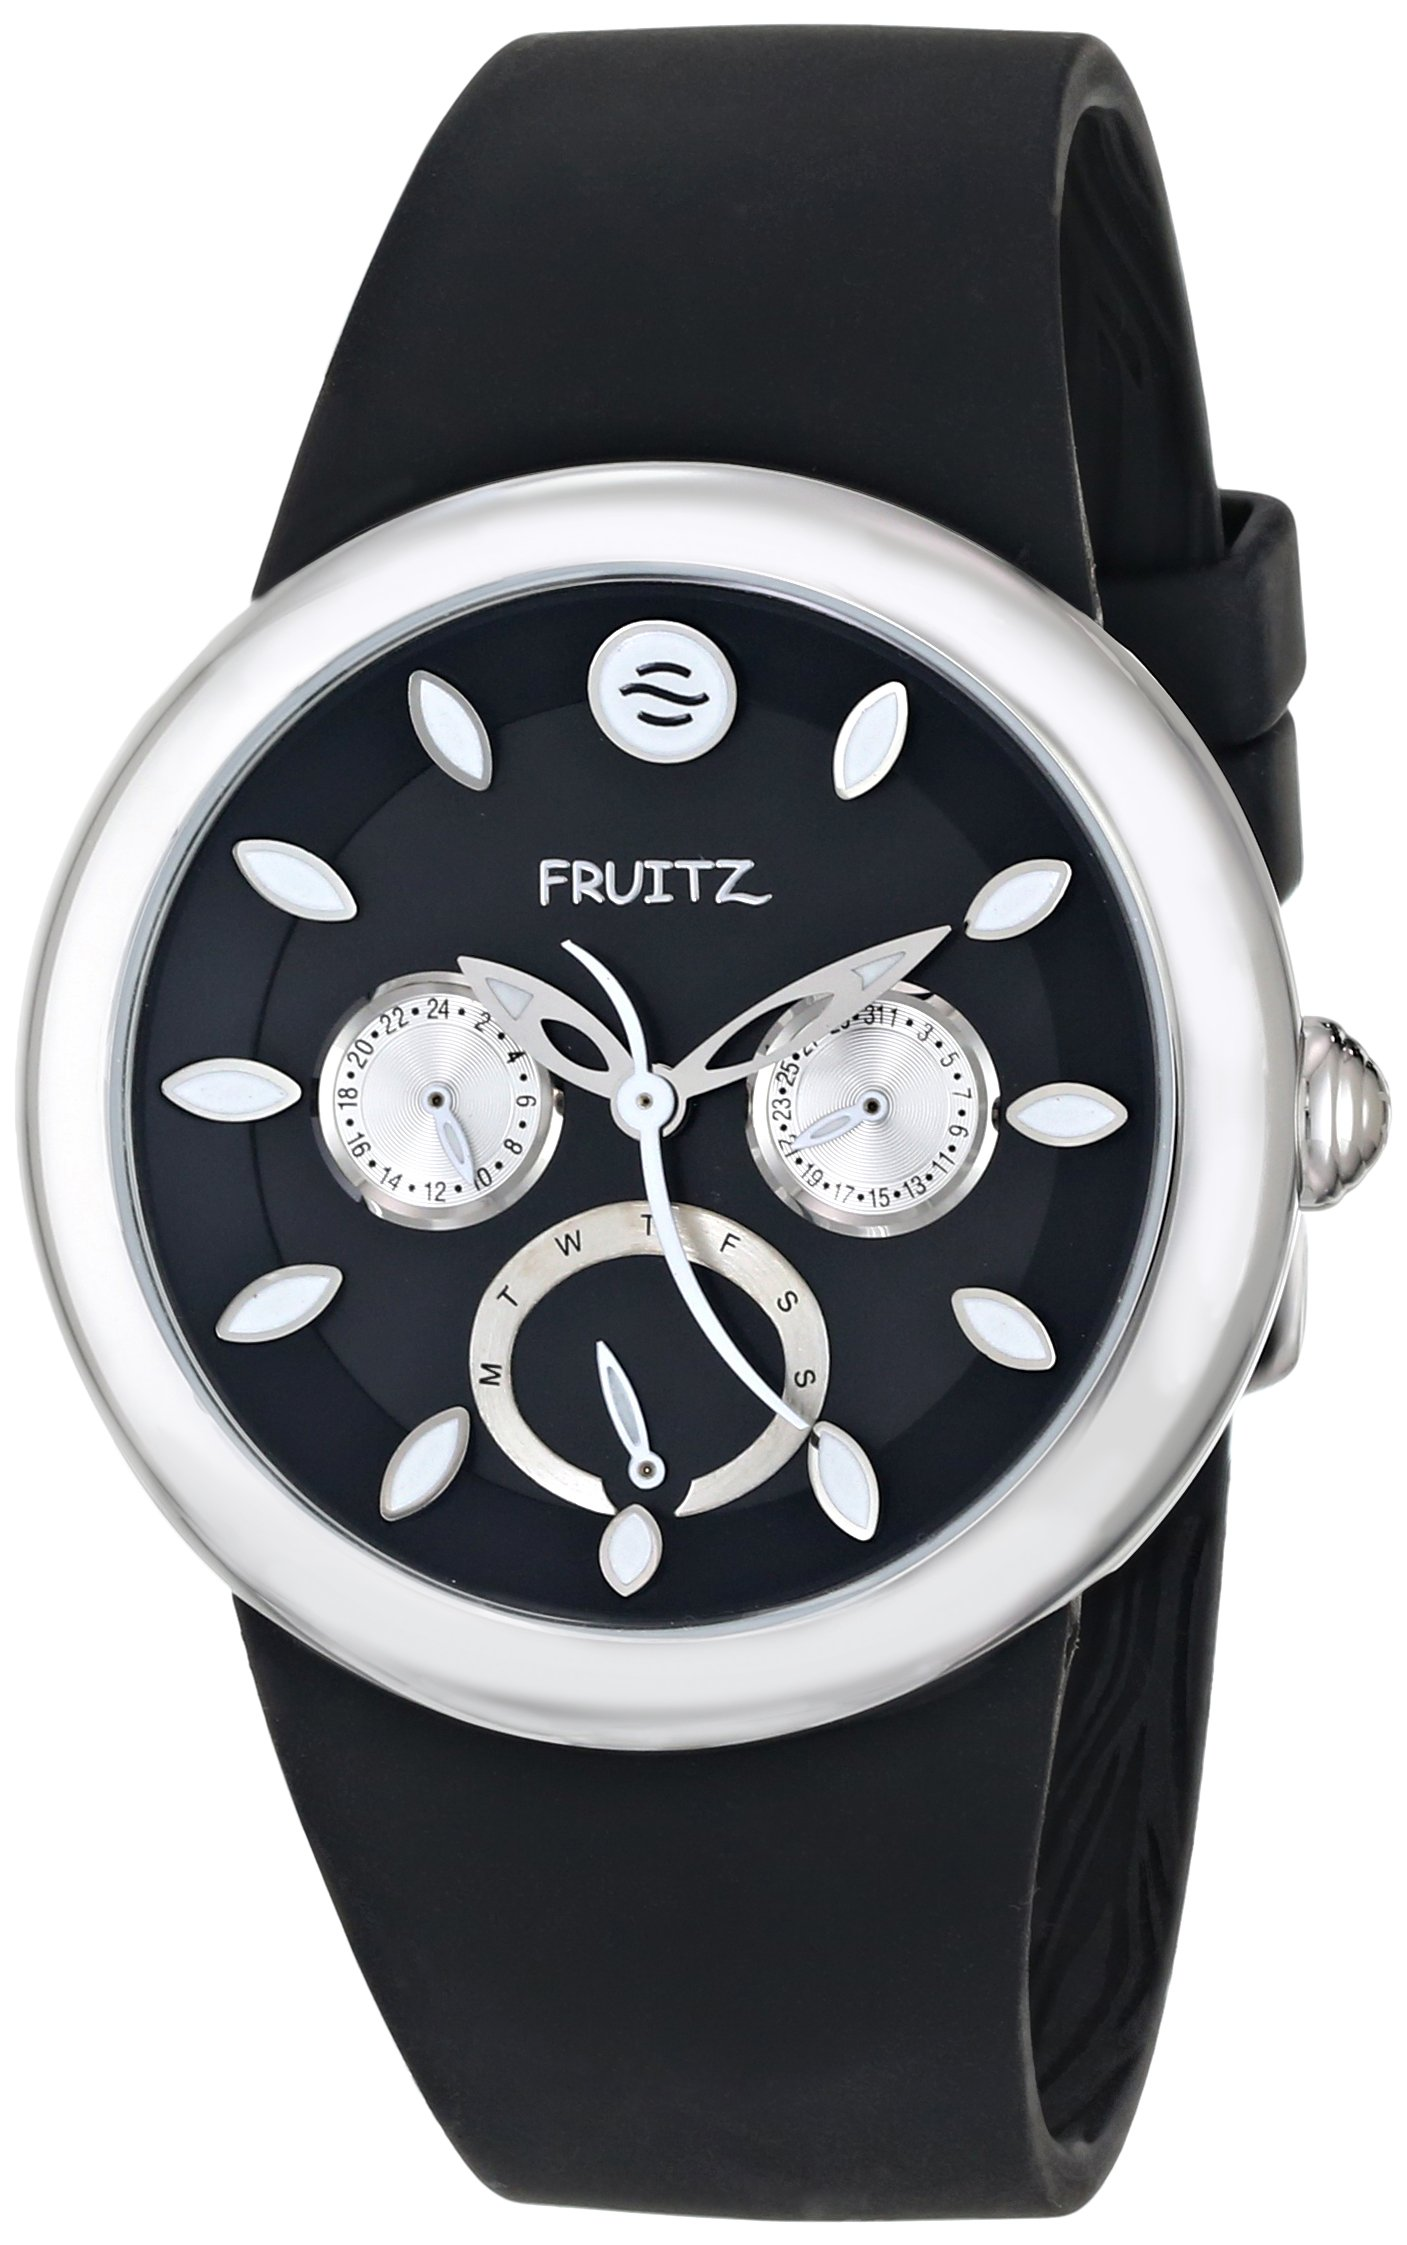 Fruitz by Philip Stein Unisex F43S-B-B Analog Display Japanese Quartz Black Watch by Fruitz by Philip Stein (Image #1)